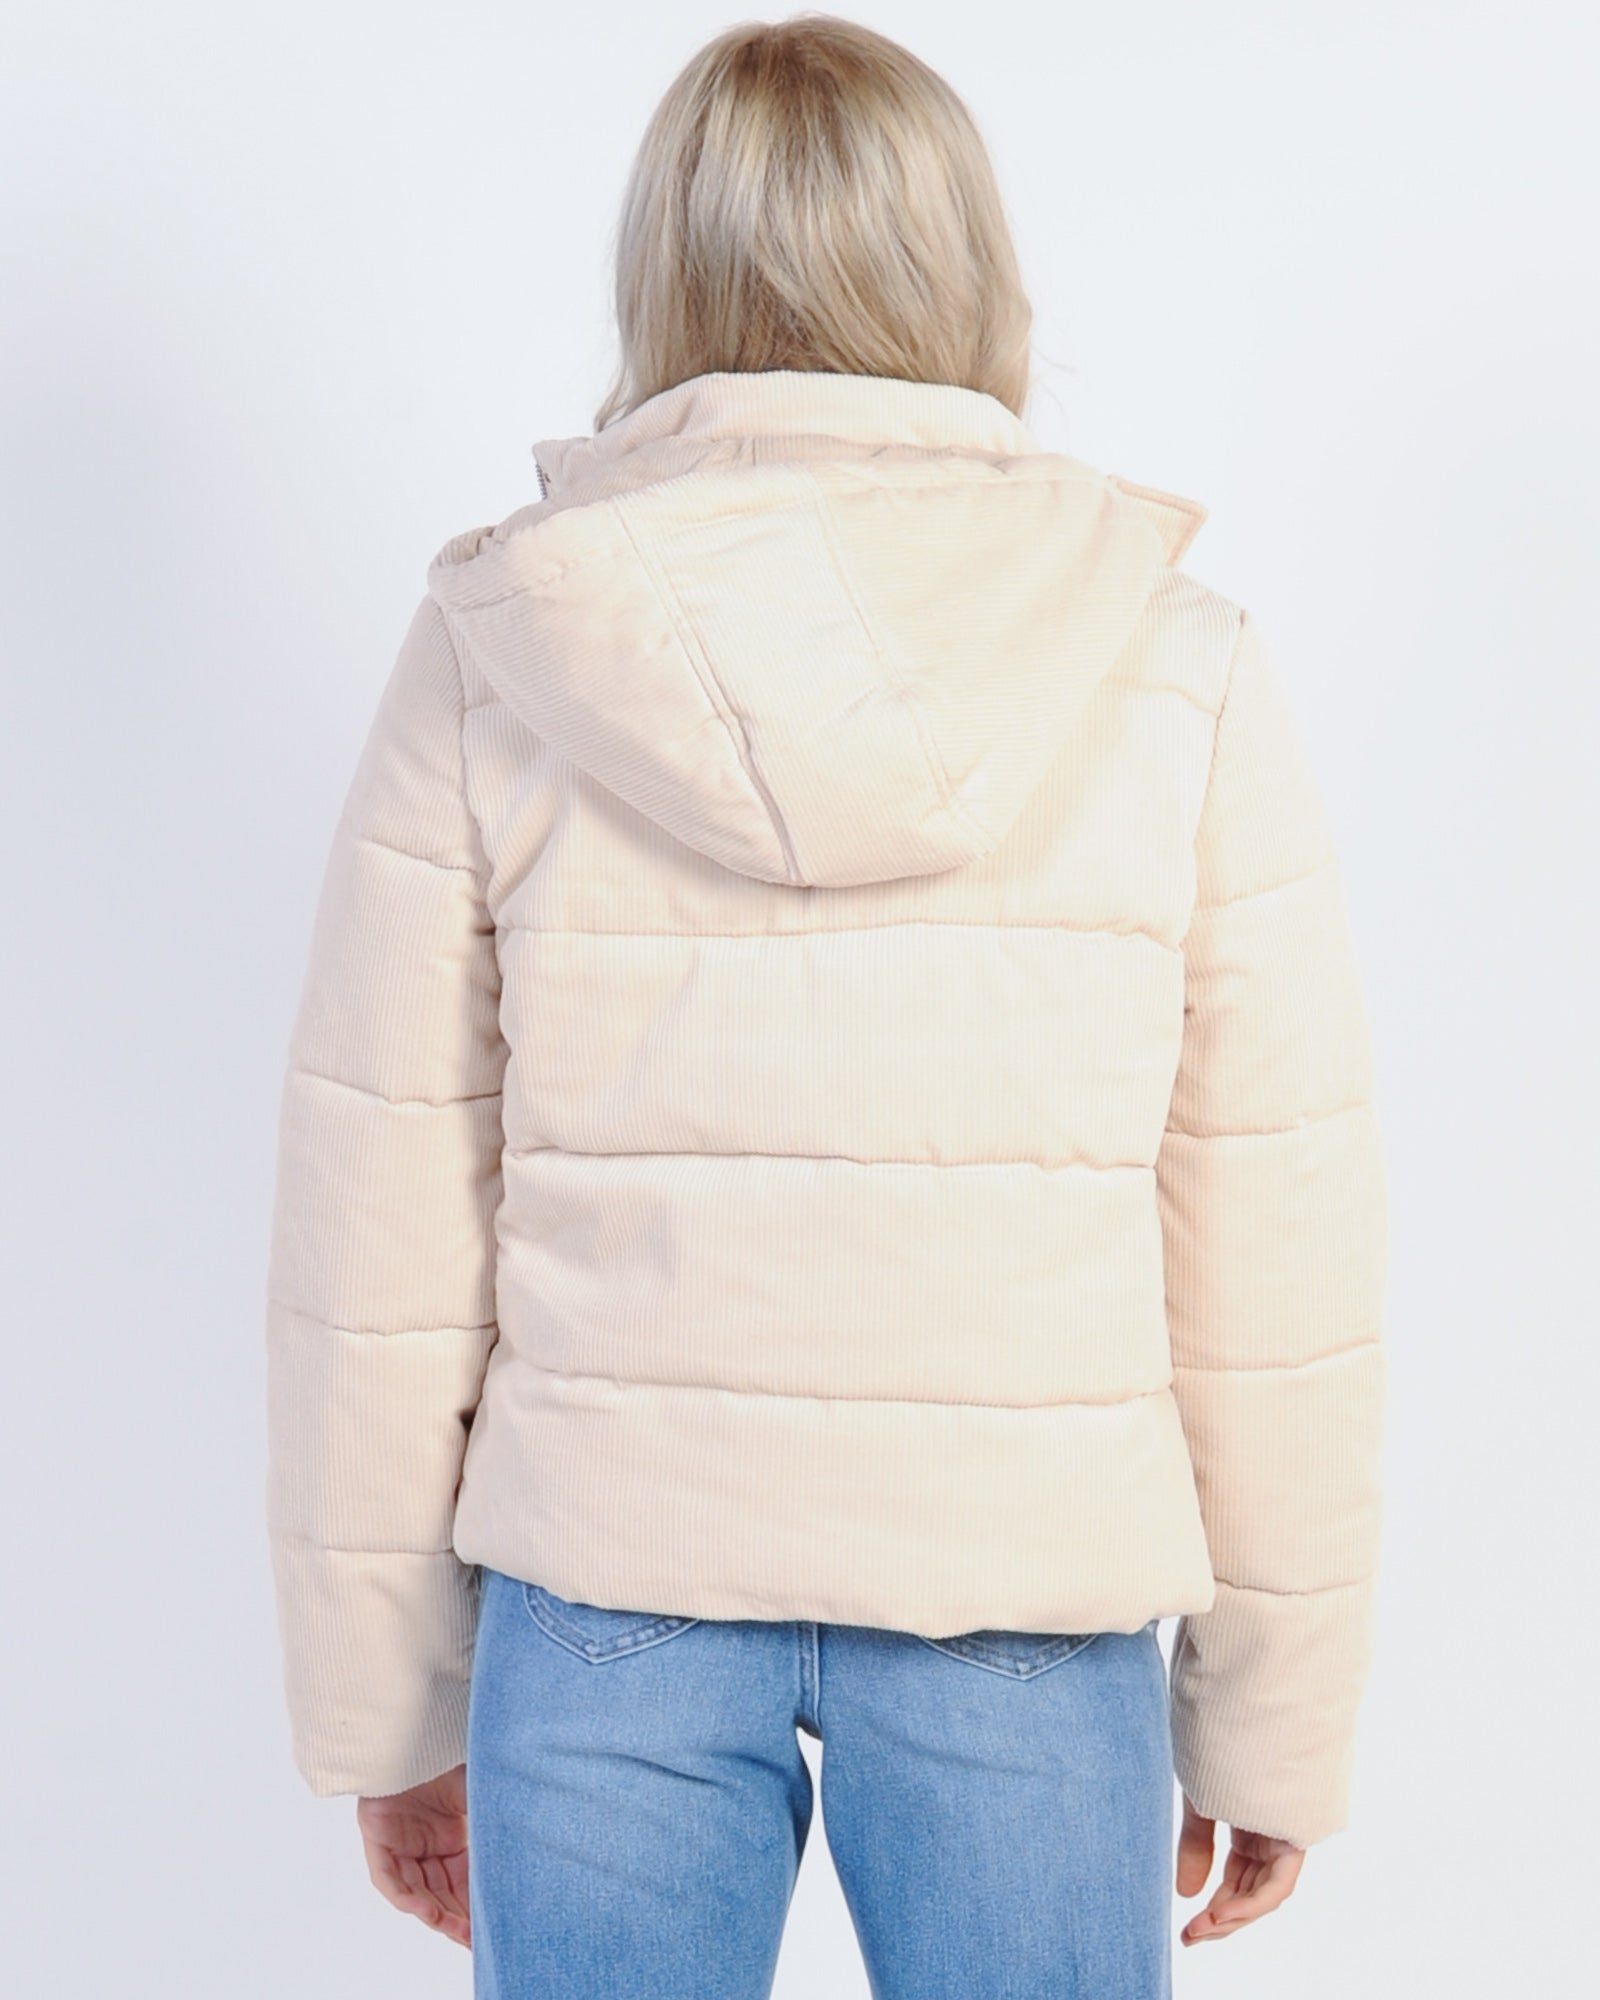 All About Eve Cali Cord Puffer Jacket - Vintage White ...